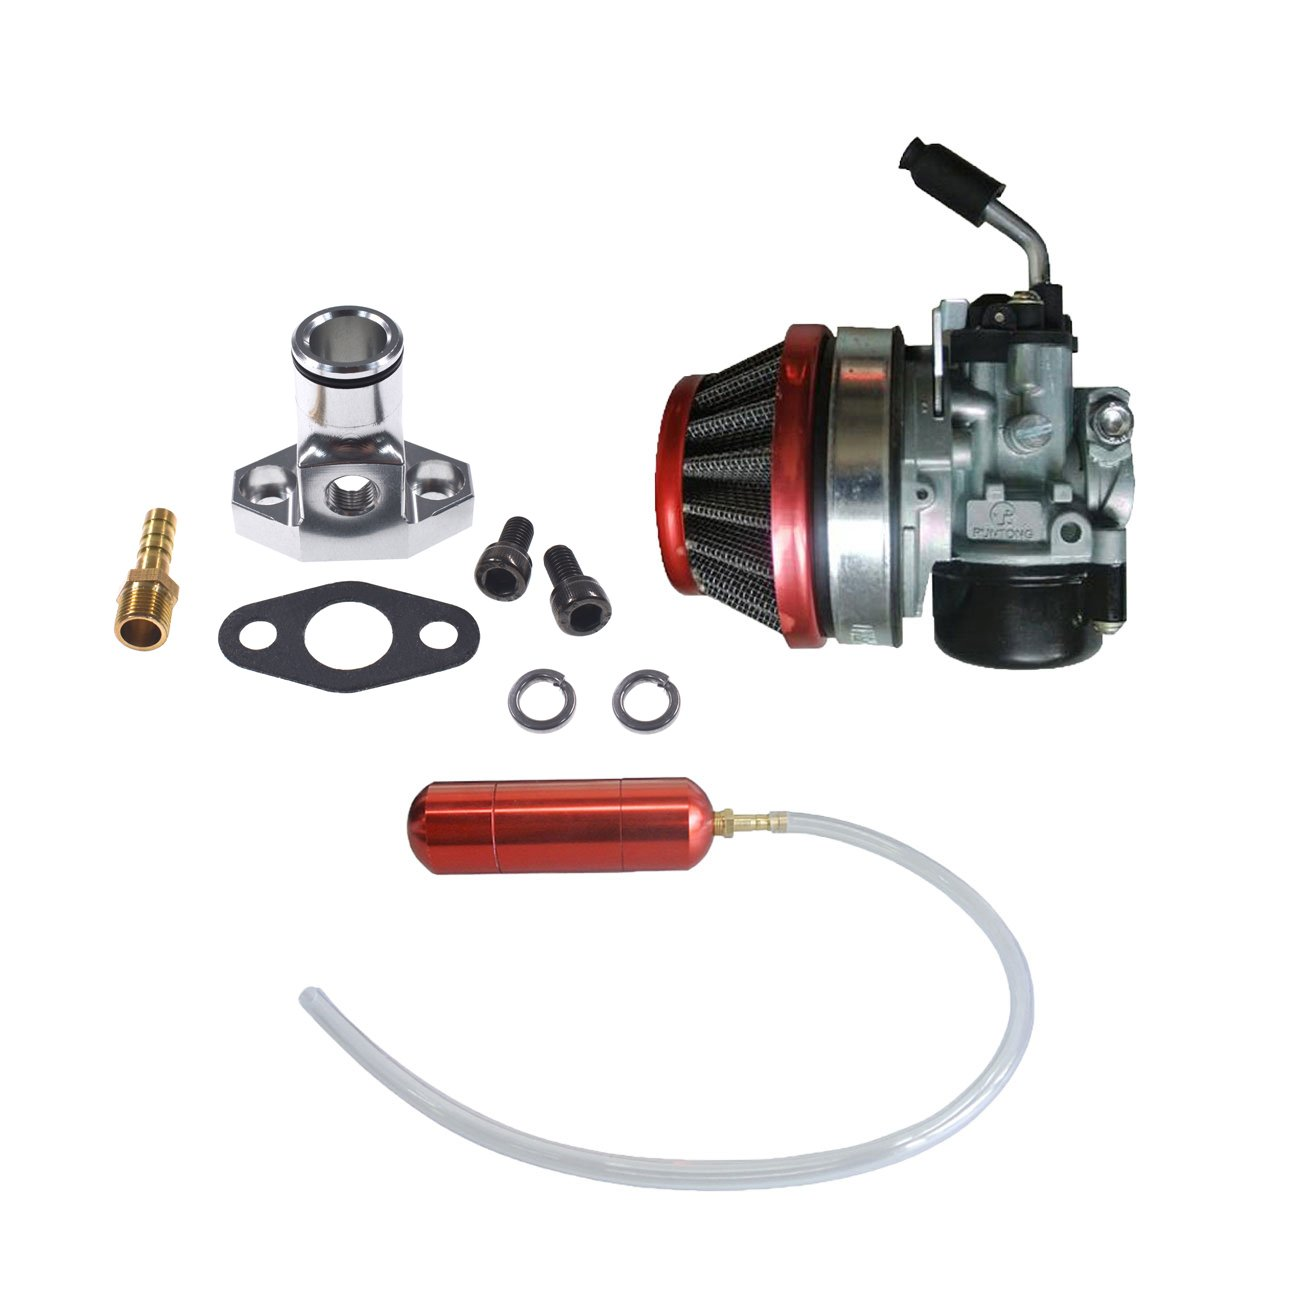 JRL Carburetor&Red Gas Power Boost Bottle For 66cc 80cc Engine Motorized Bicycle